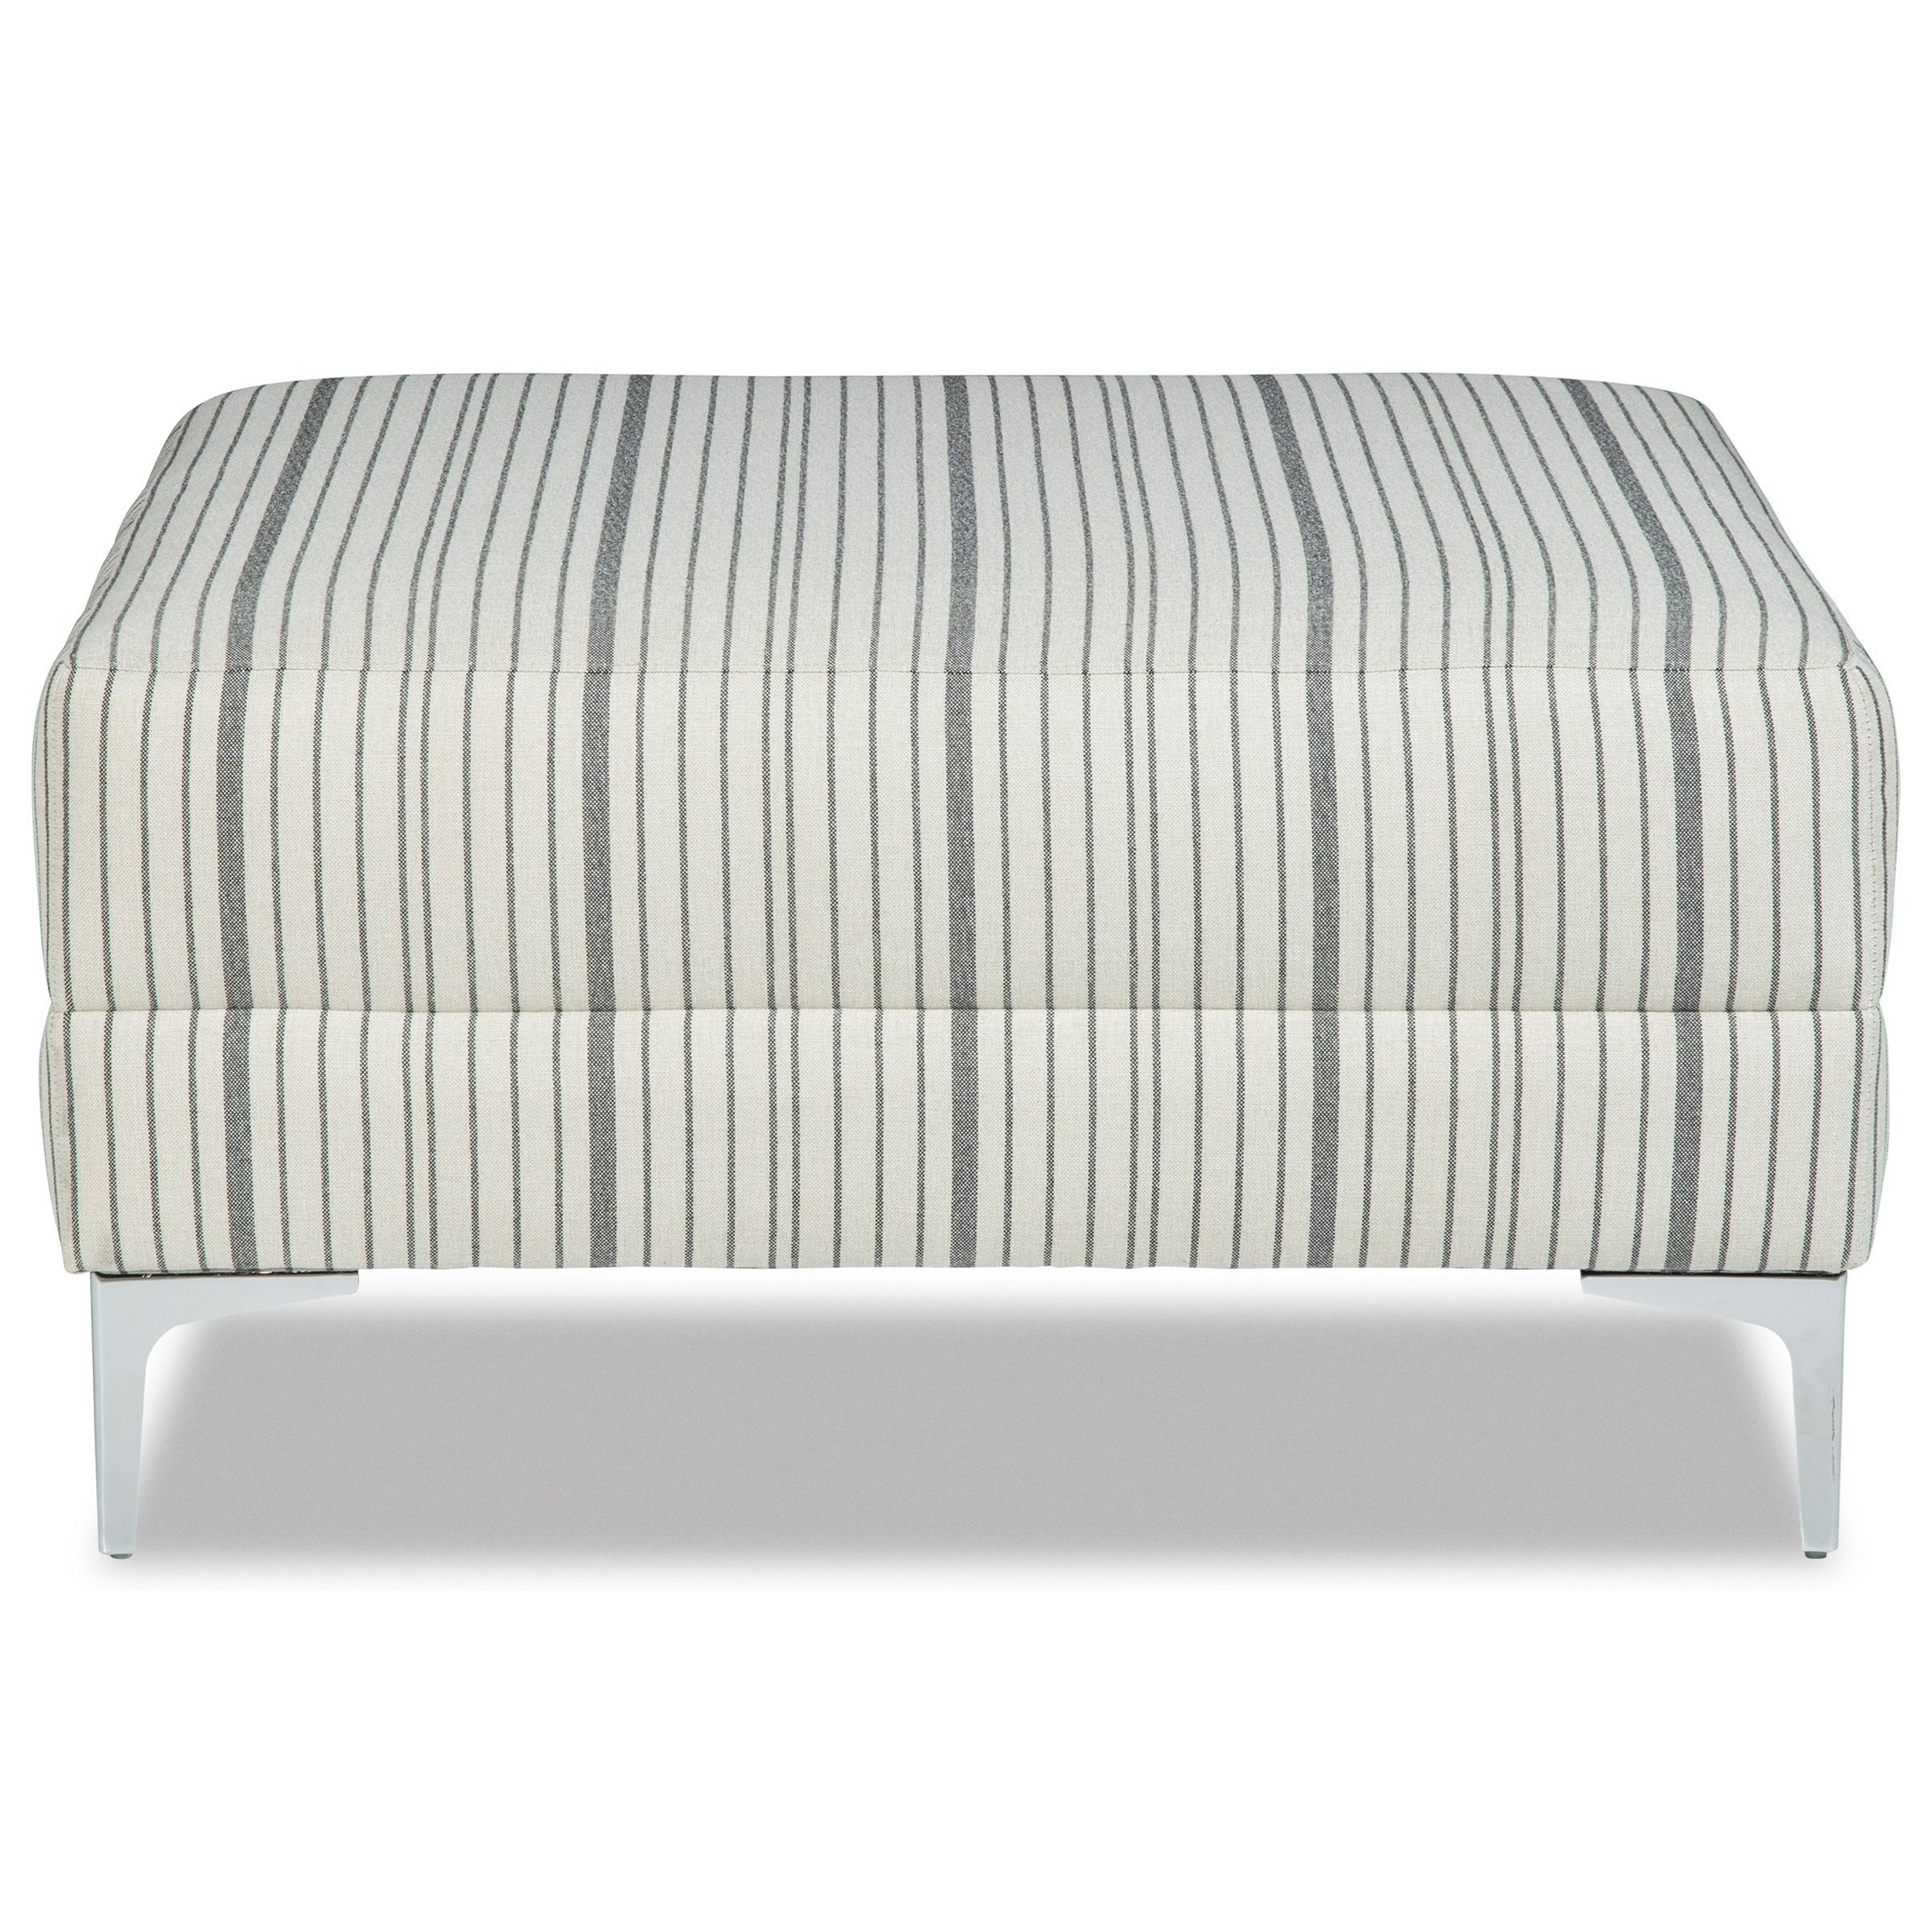 M9 Custom - Design Options Customizble Small Square Cocktail Ottoman by Craftmaster at Baer's Furniture